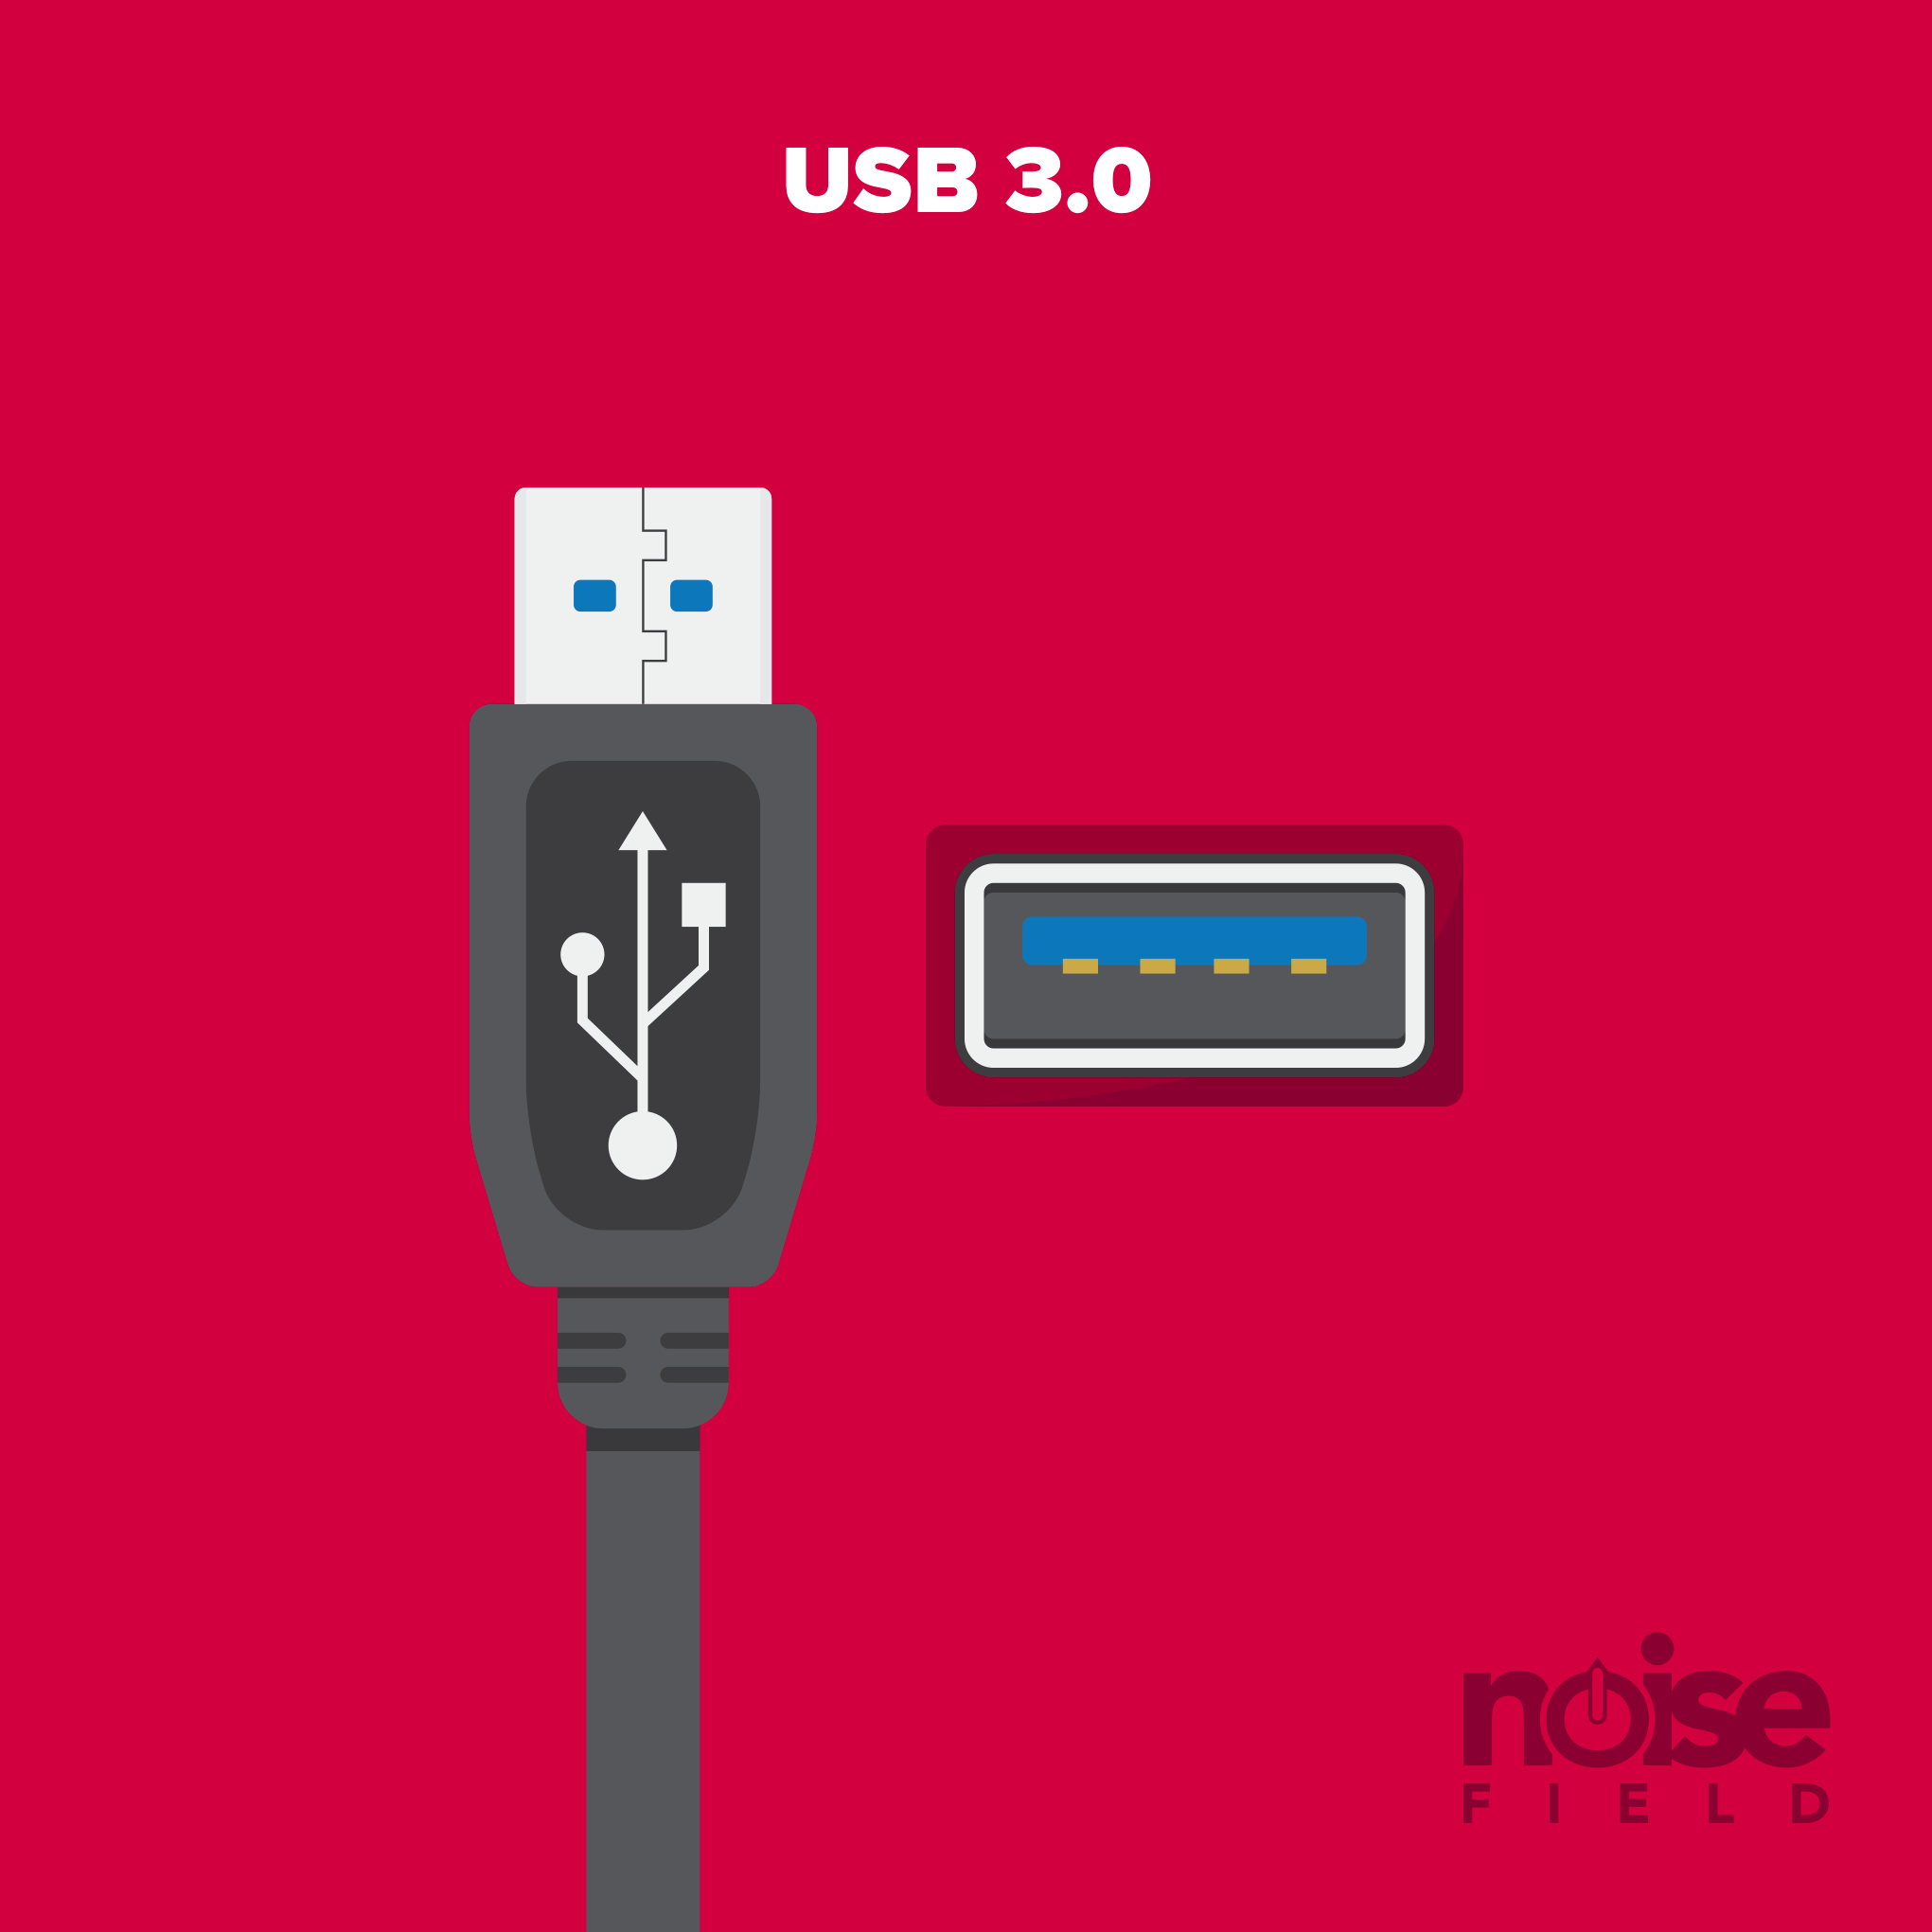 USB 3.0 Illustration Vector Audio Interface